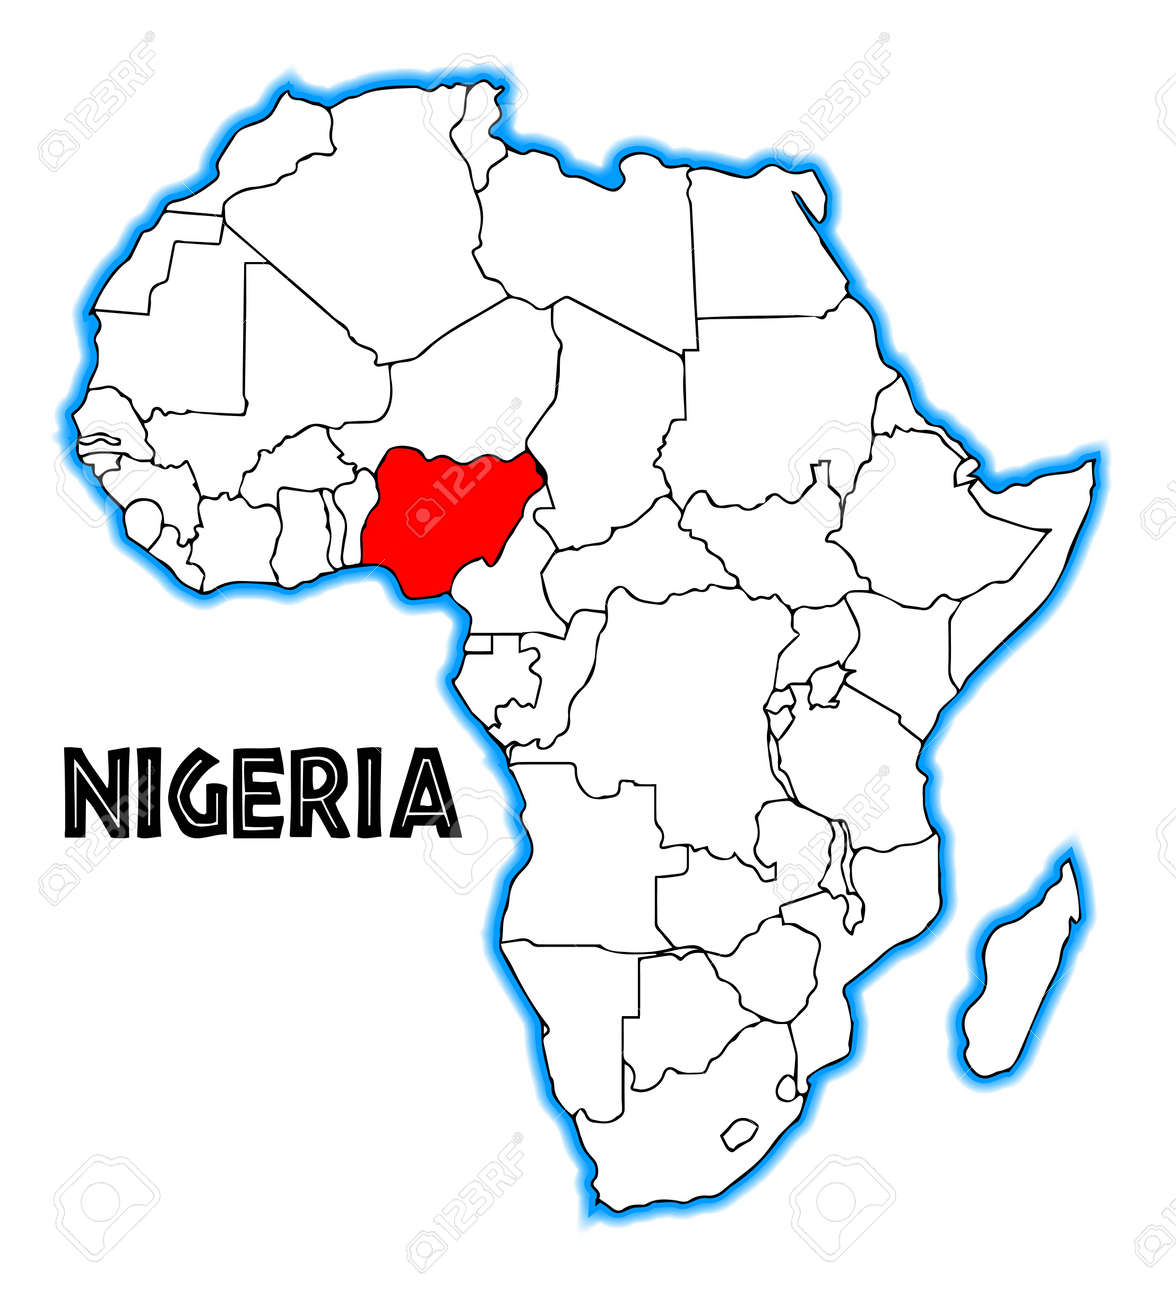 Map Of Africa Showing Nigeria.Nigeria Map Of Africa Map Of Africa